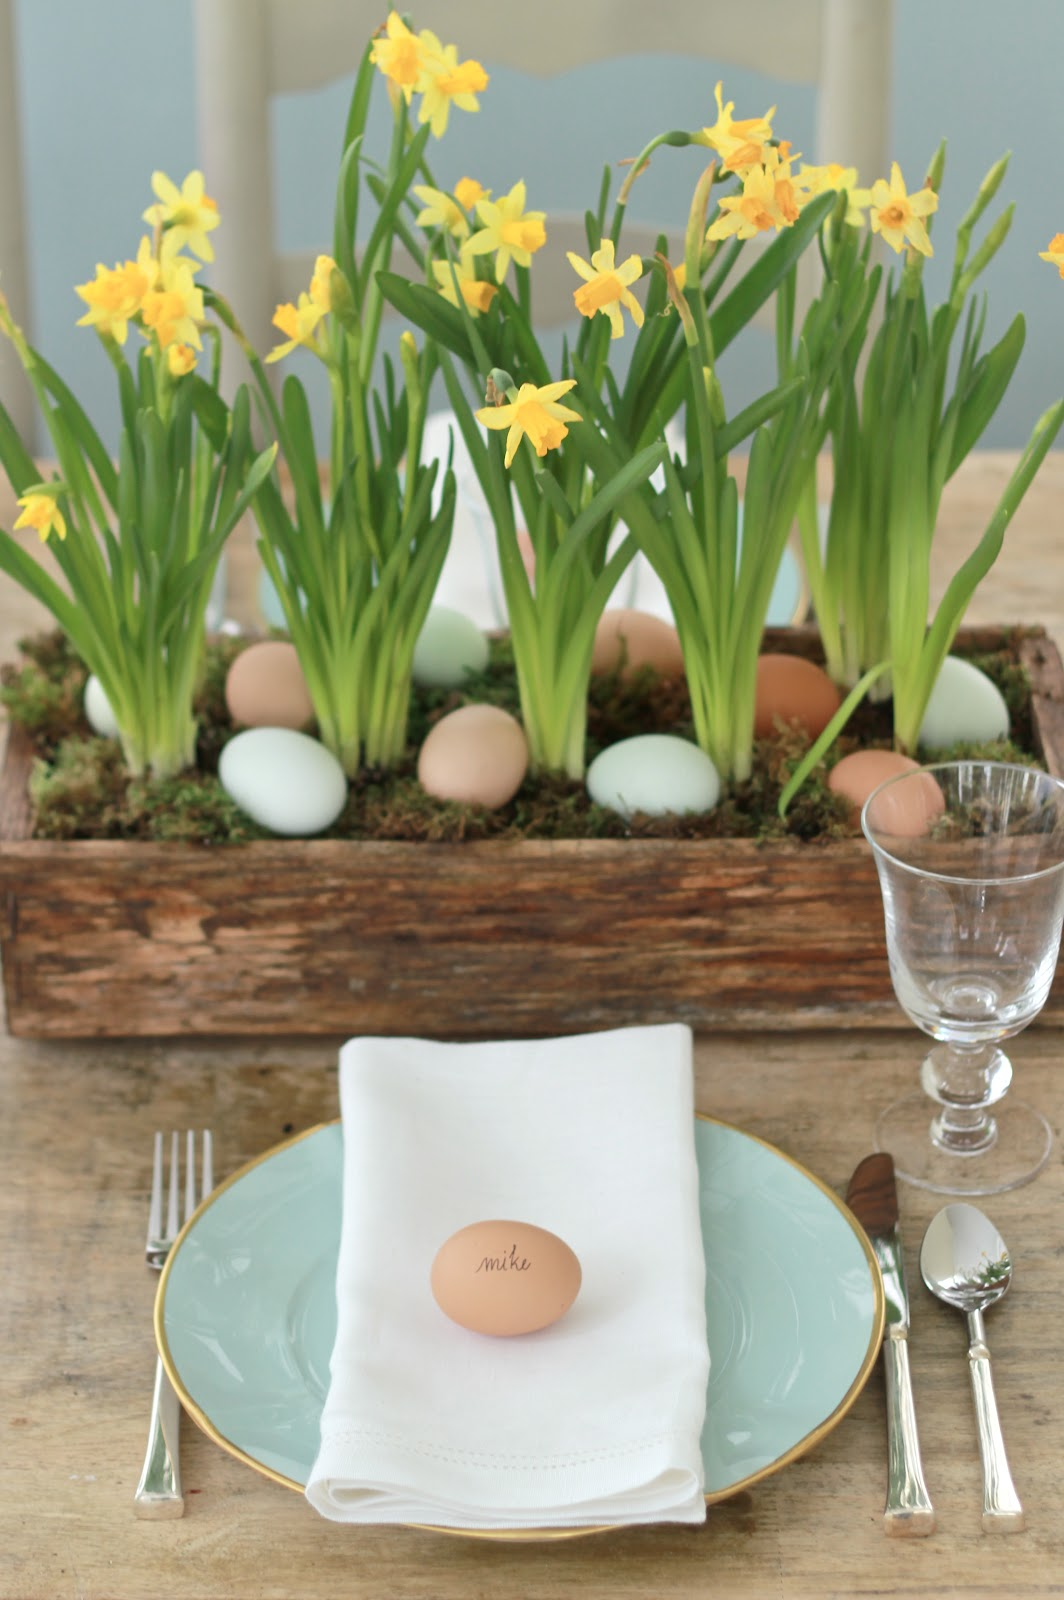 ... -easter-table-decoration-ideas-easter-table-decorations-ideas-easter